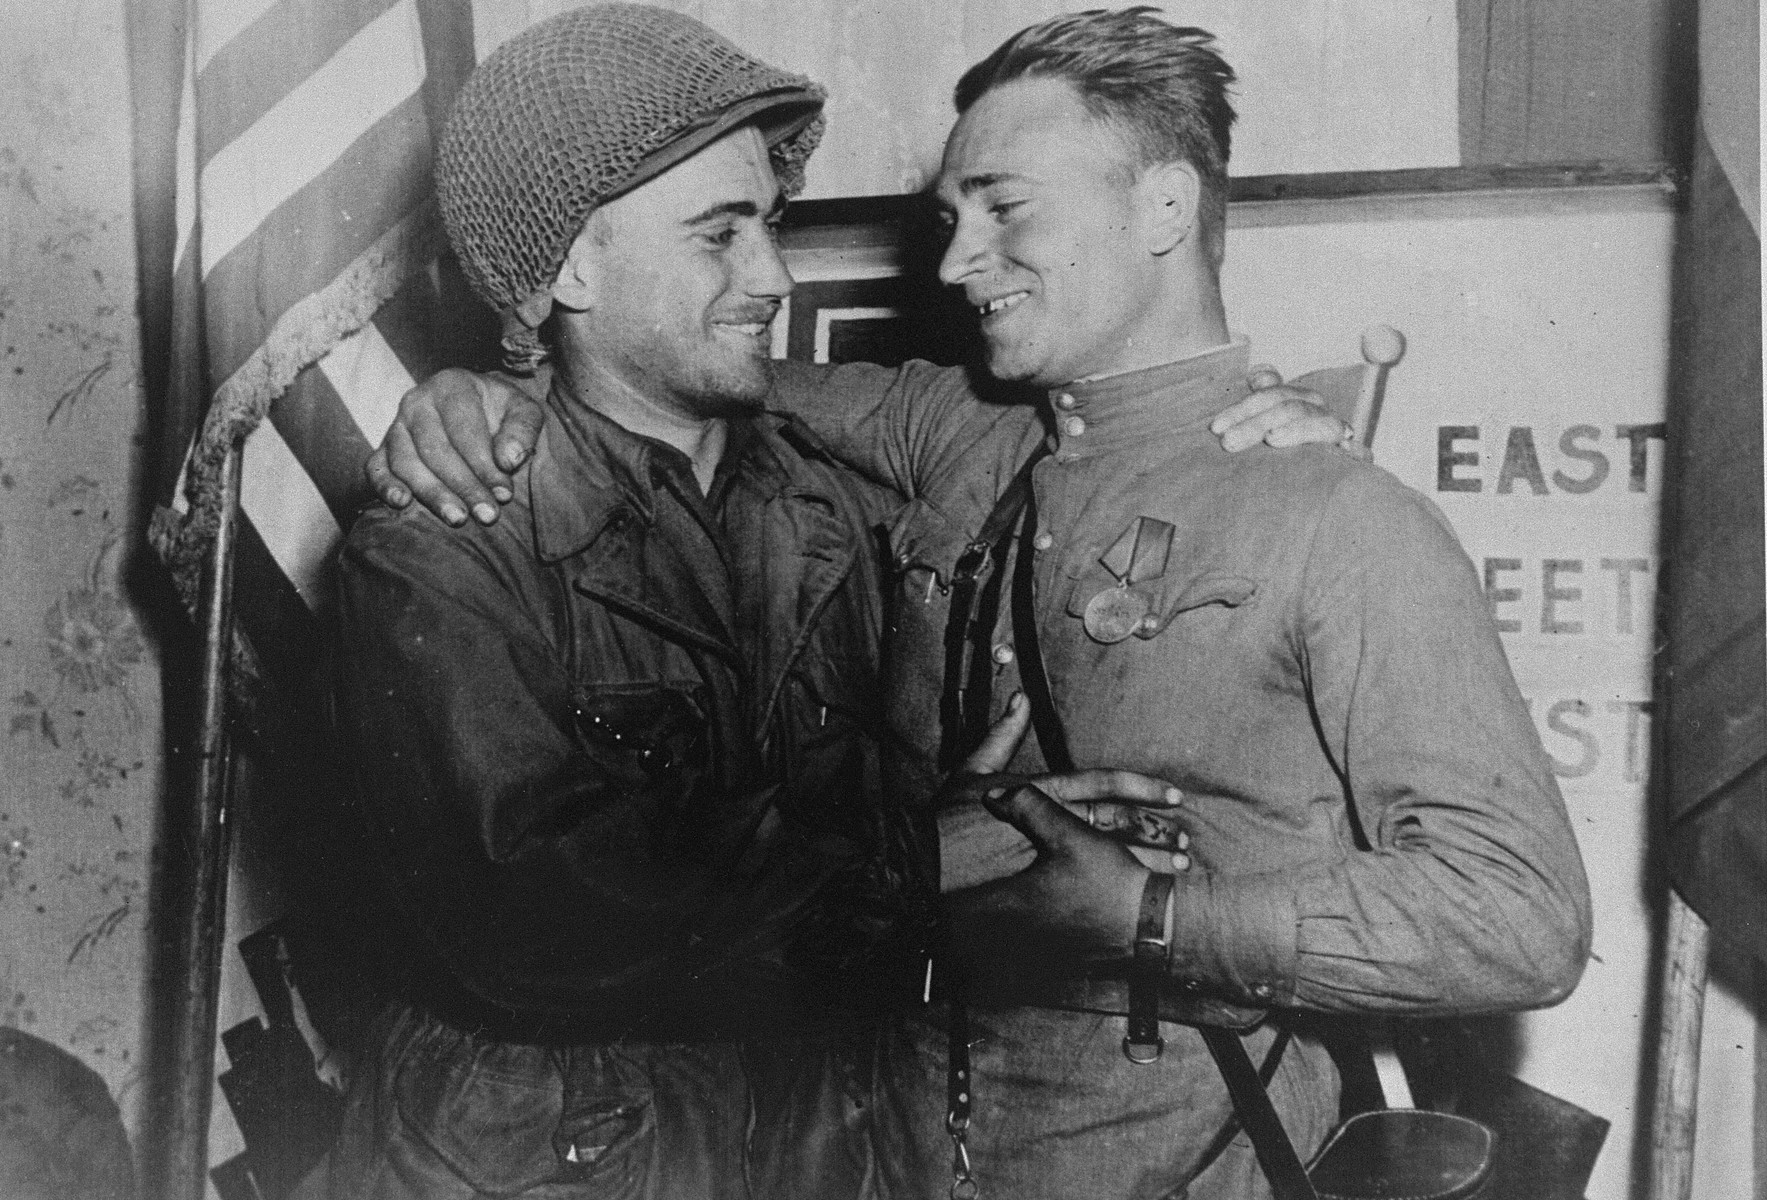 """U.S. 2nd Lt. William Robertson and Russian Lt. Alexander Sylashko embrace in front of sign that reads, """"East Meets West,"""" after the American and Soviet armies linked up near Torgau, Germany."""